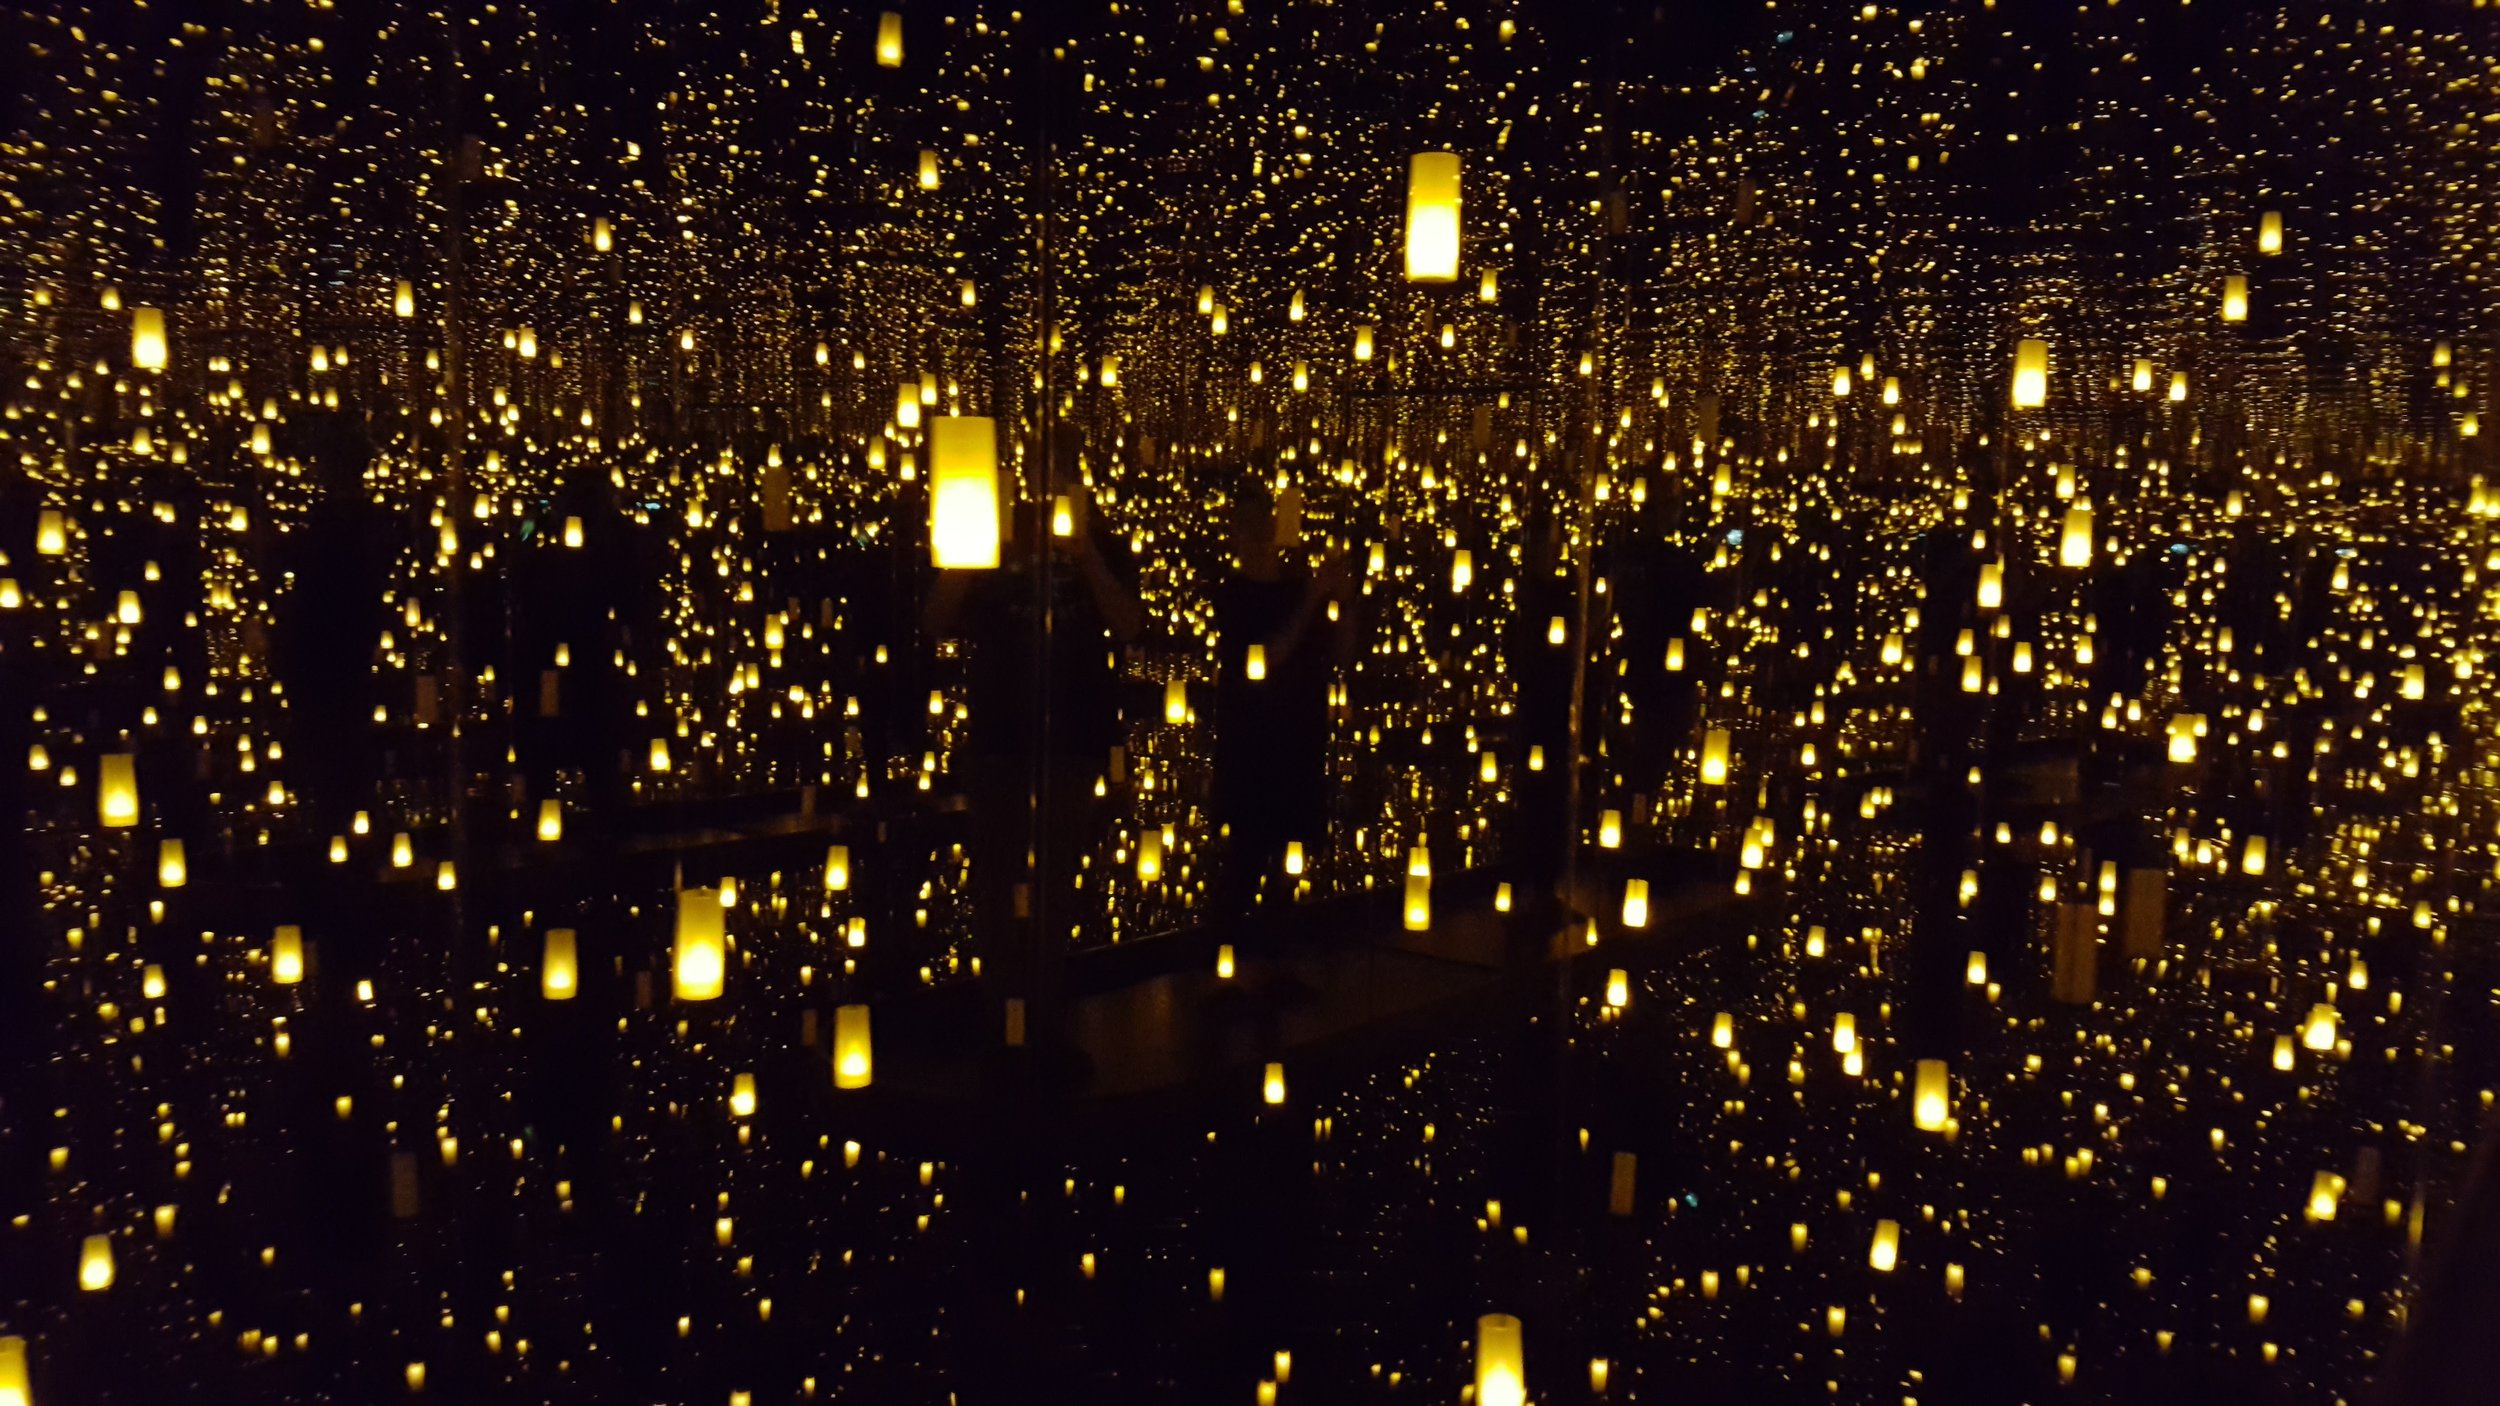 Yayoi Kusama,  Infinity Mirror Room—Aftermath of Obliteration of Eternity (2009),represented by lanterns that seem to extend into infinite space.